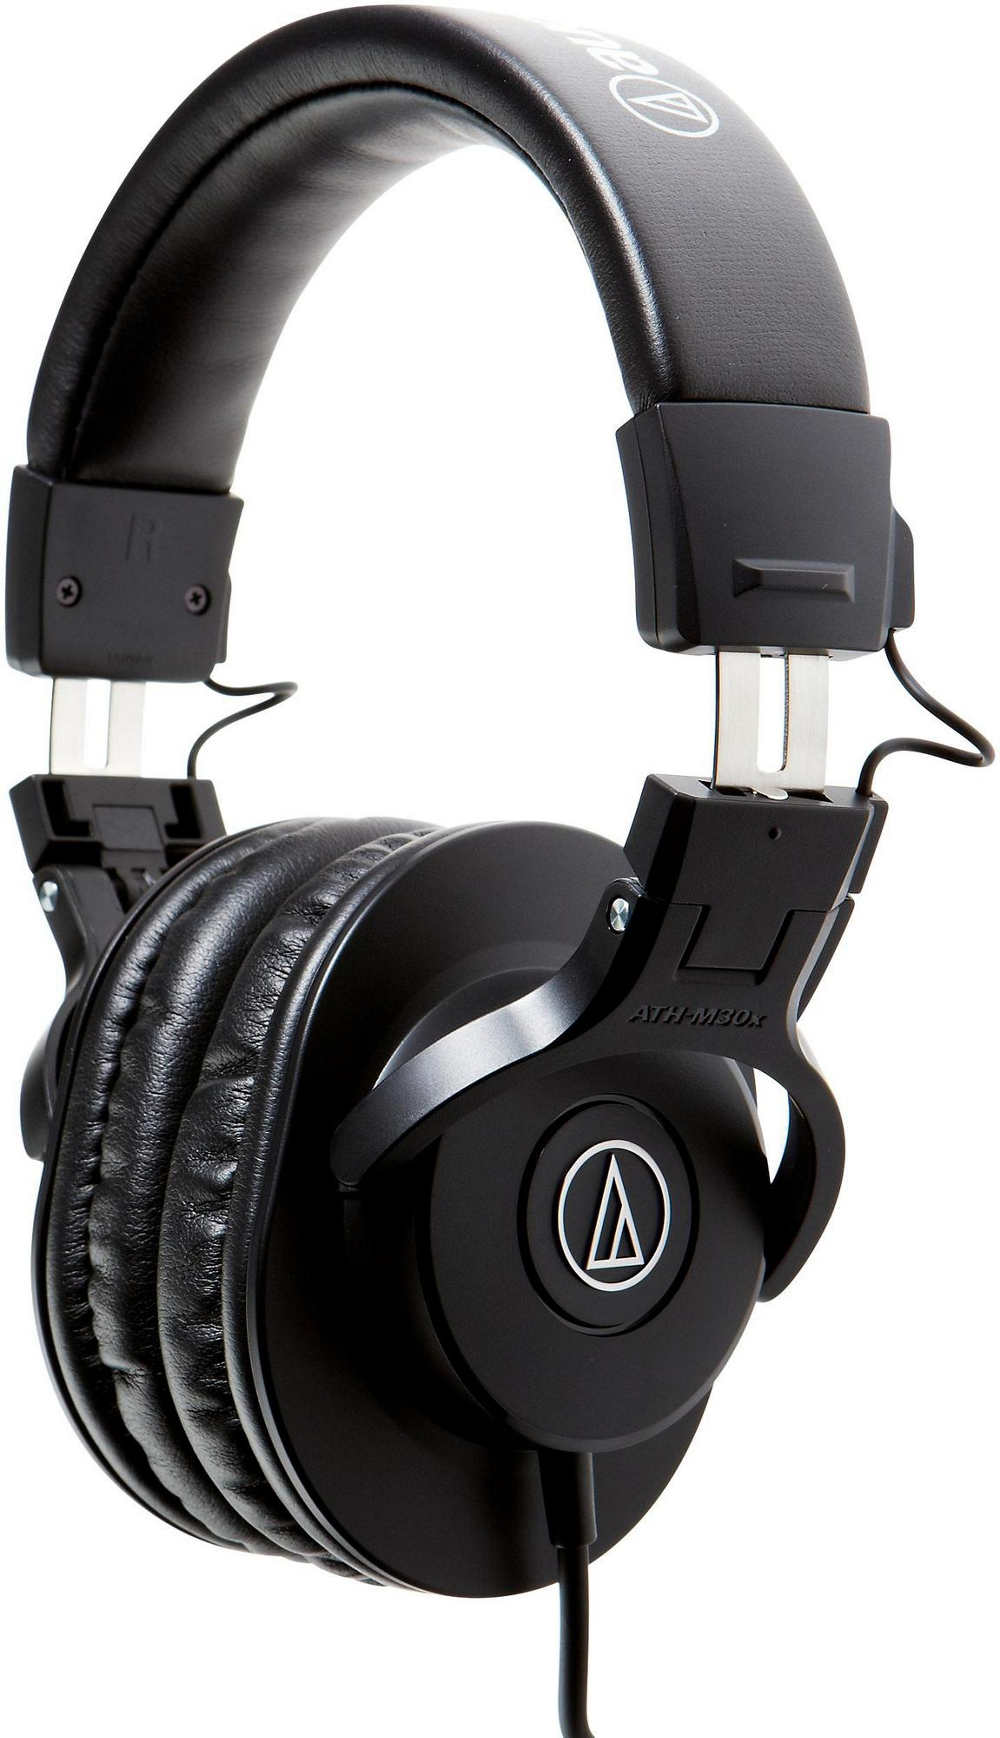 audio technica ath m30x closed back professional studio monitor headphones black ebay. Black Bedroom Furniture Sets. Home Design Ideas